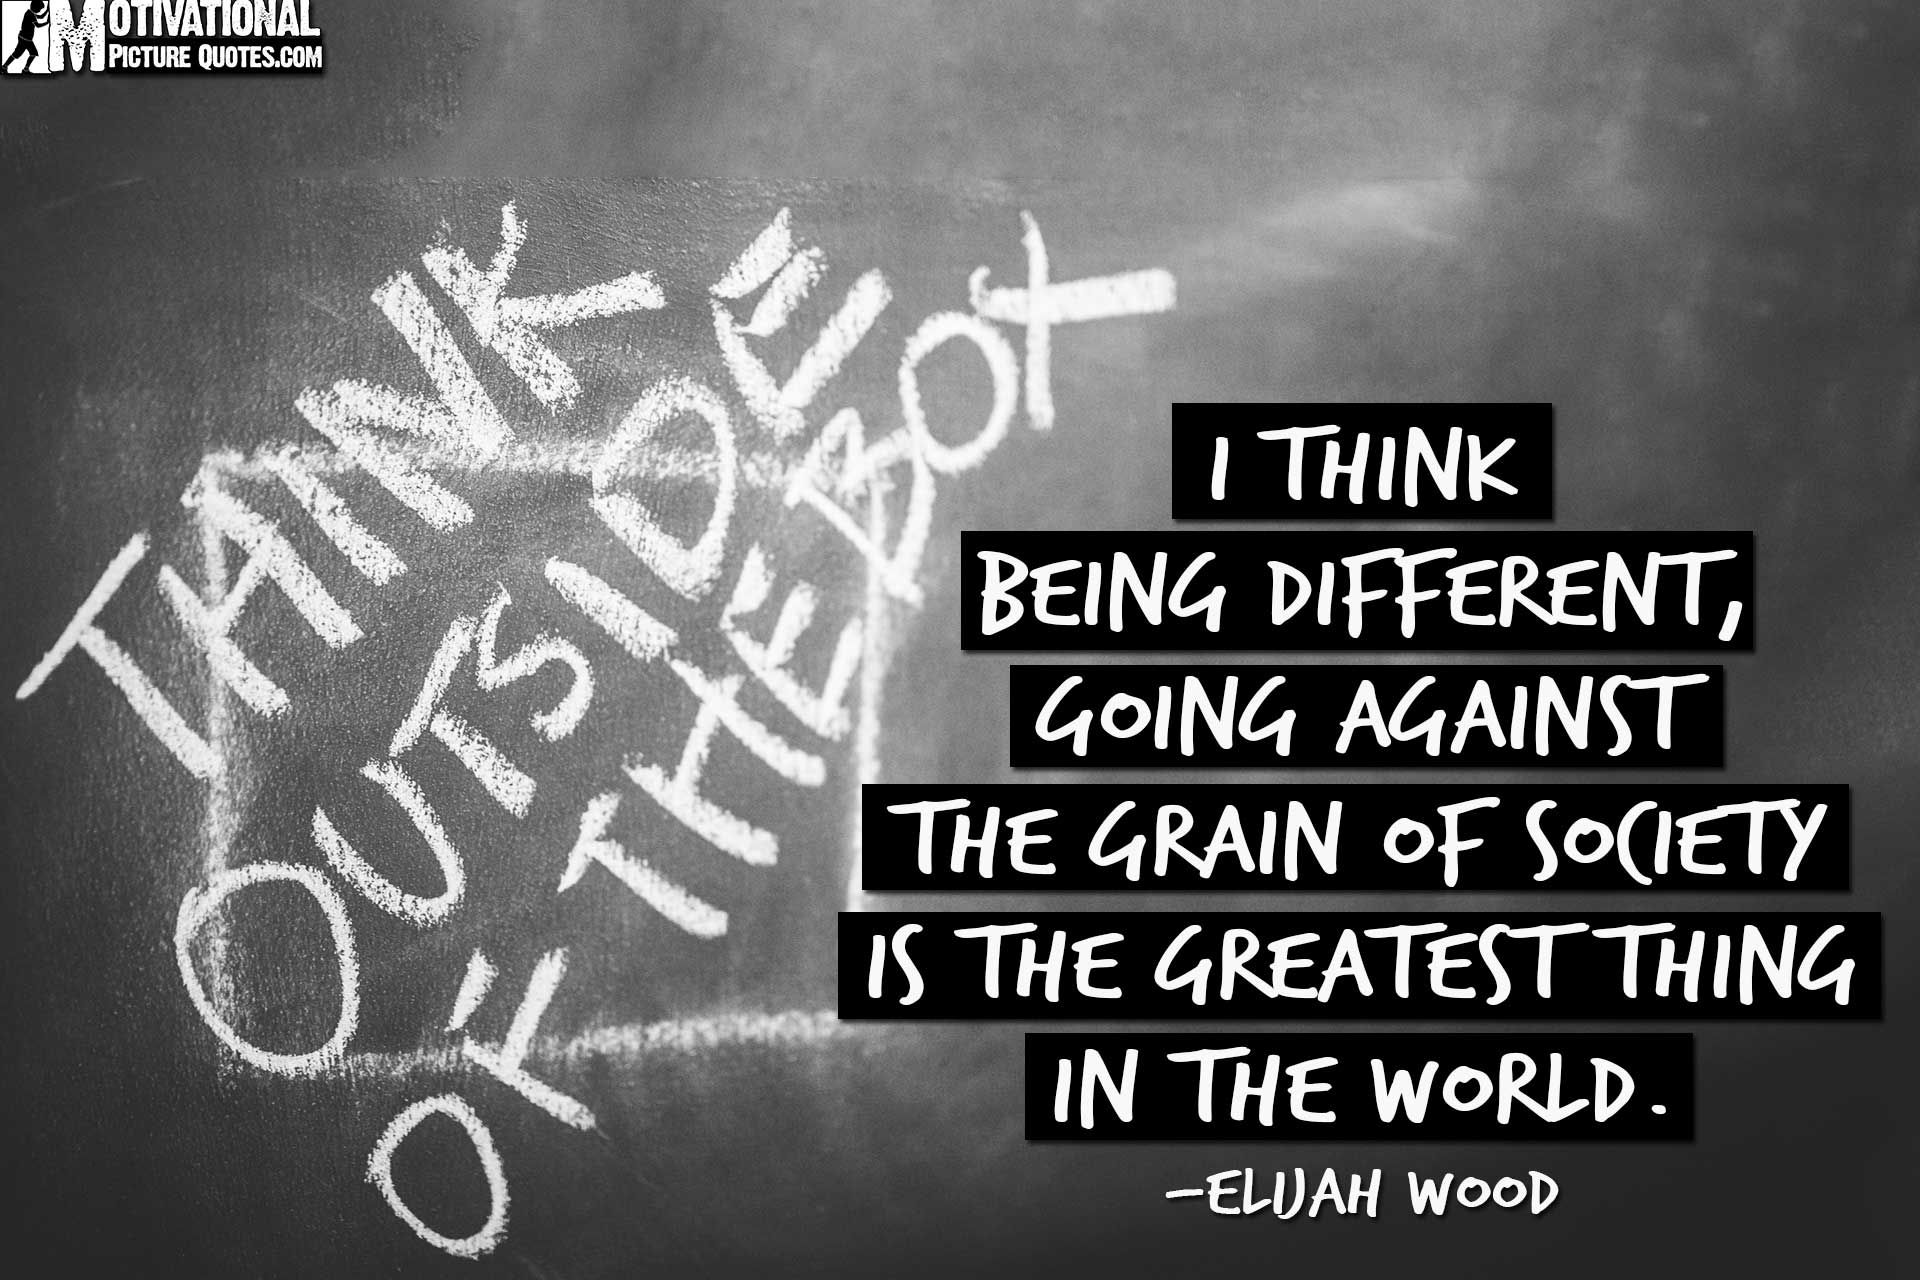 Quotes About Being Different From Society Motivational Pictures